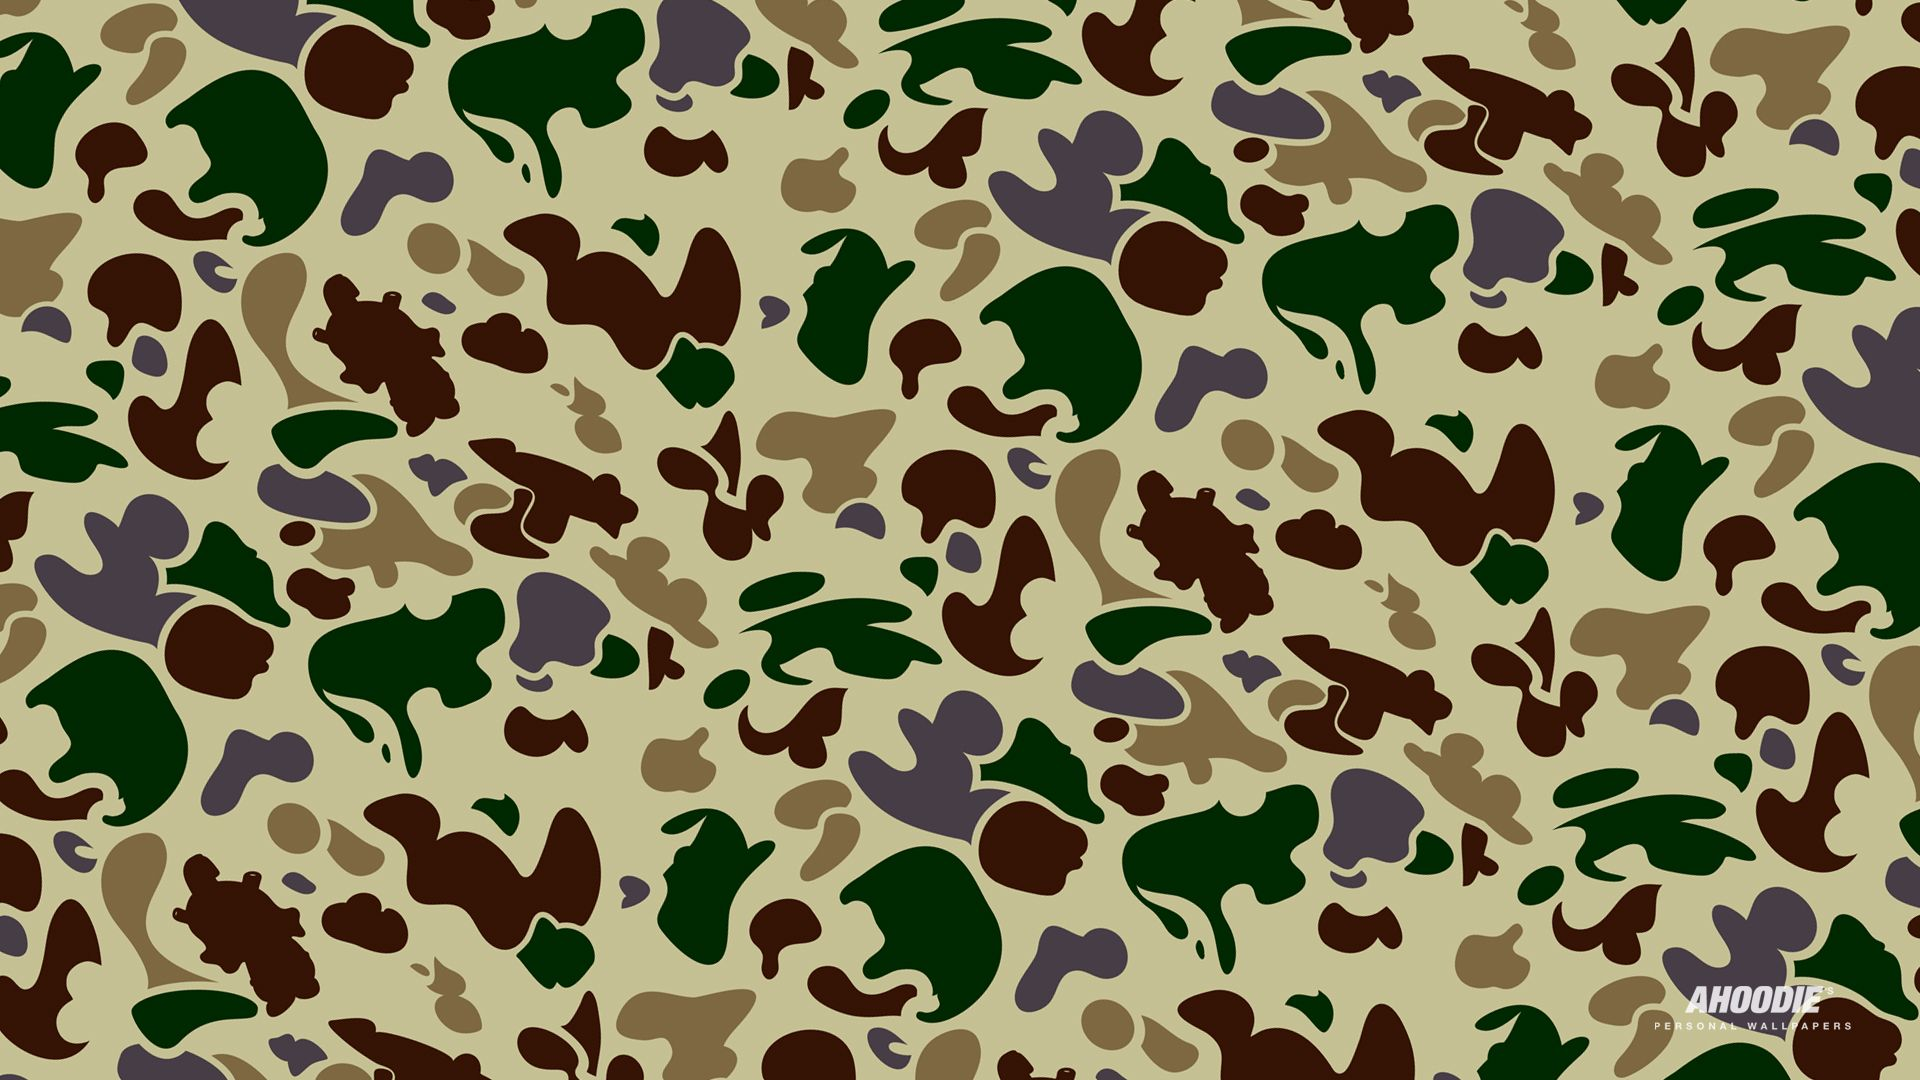 1920x1080 bape wallpapers Group with 76 items